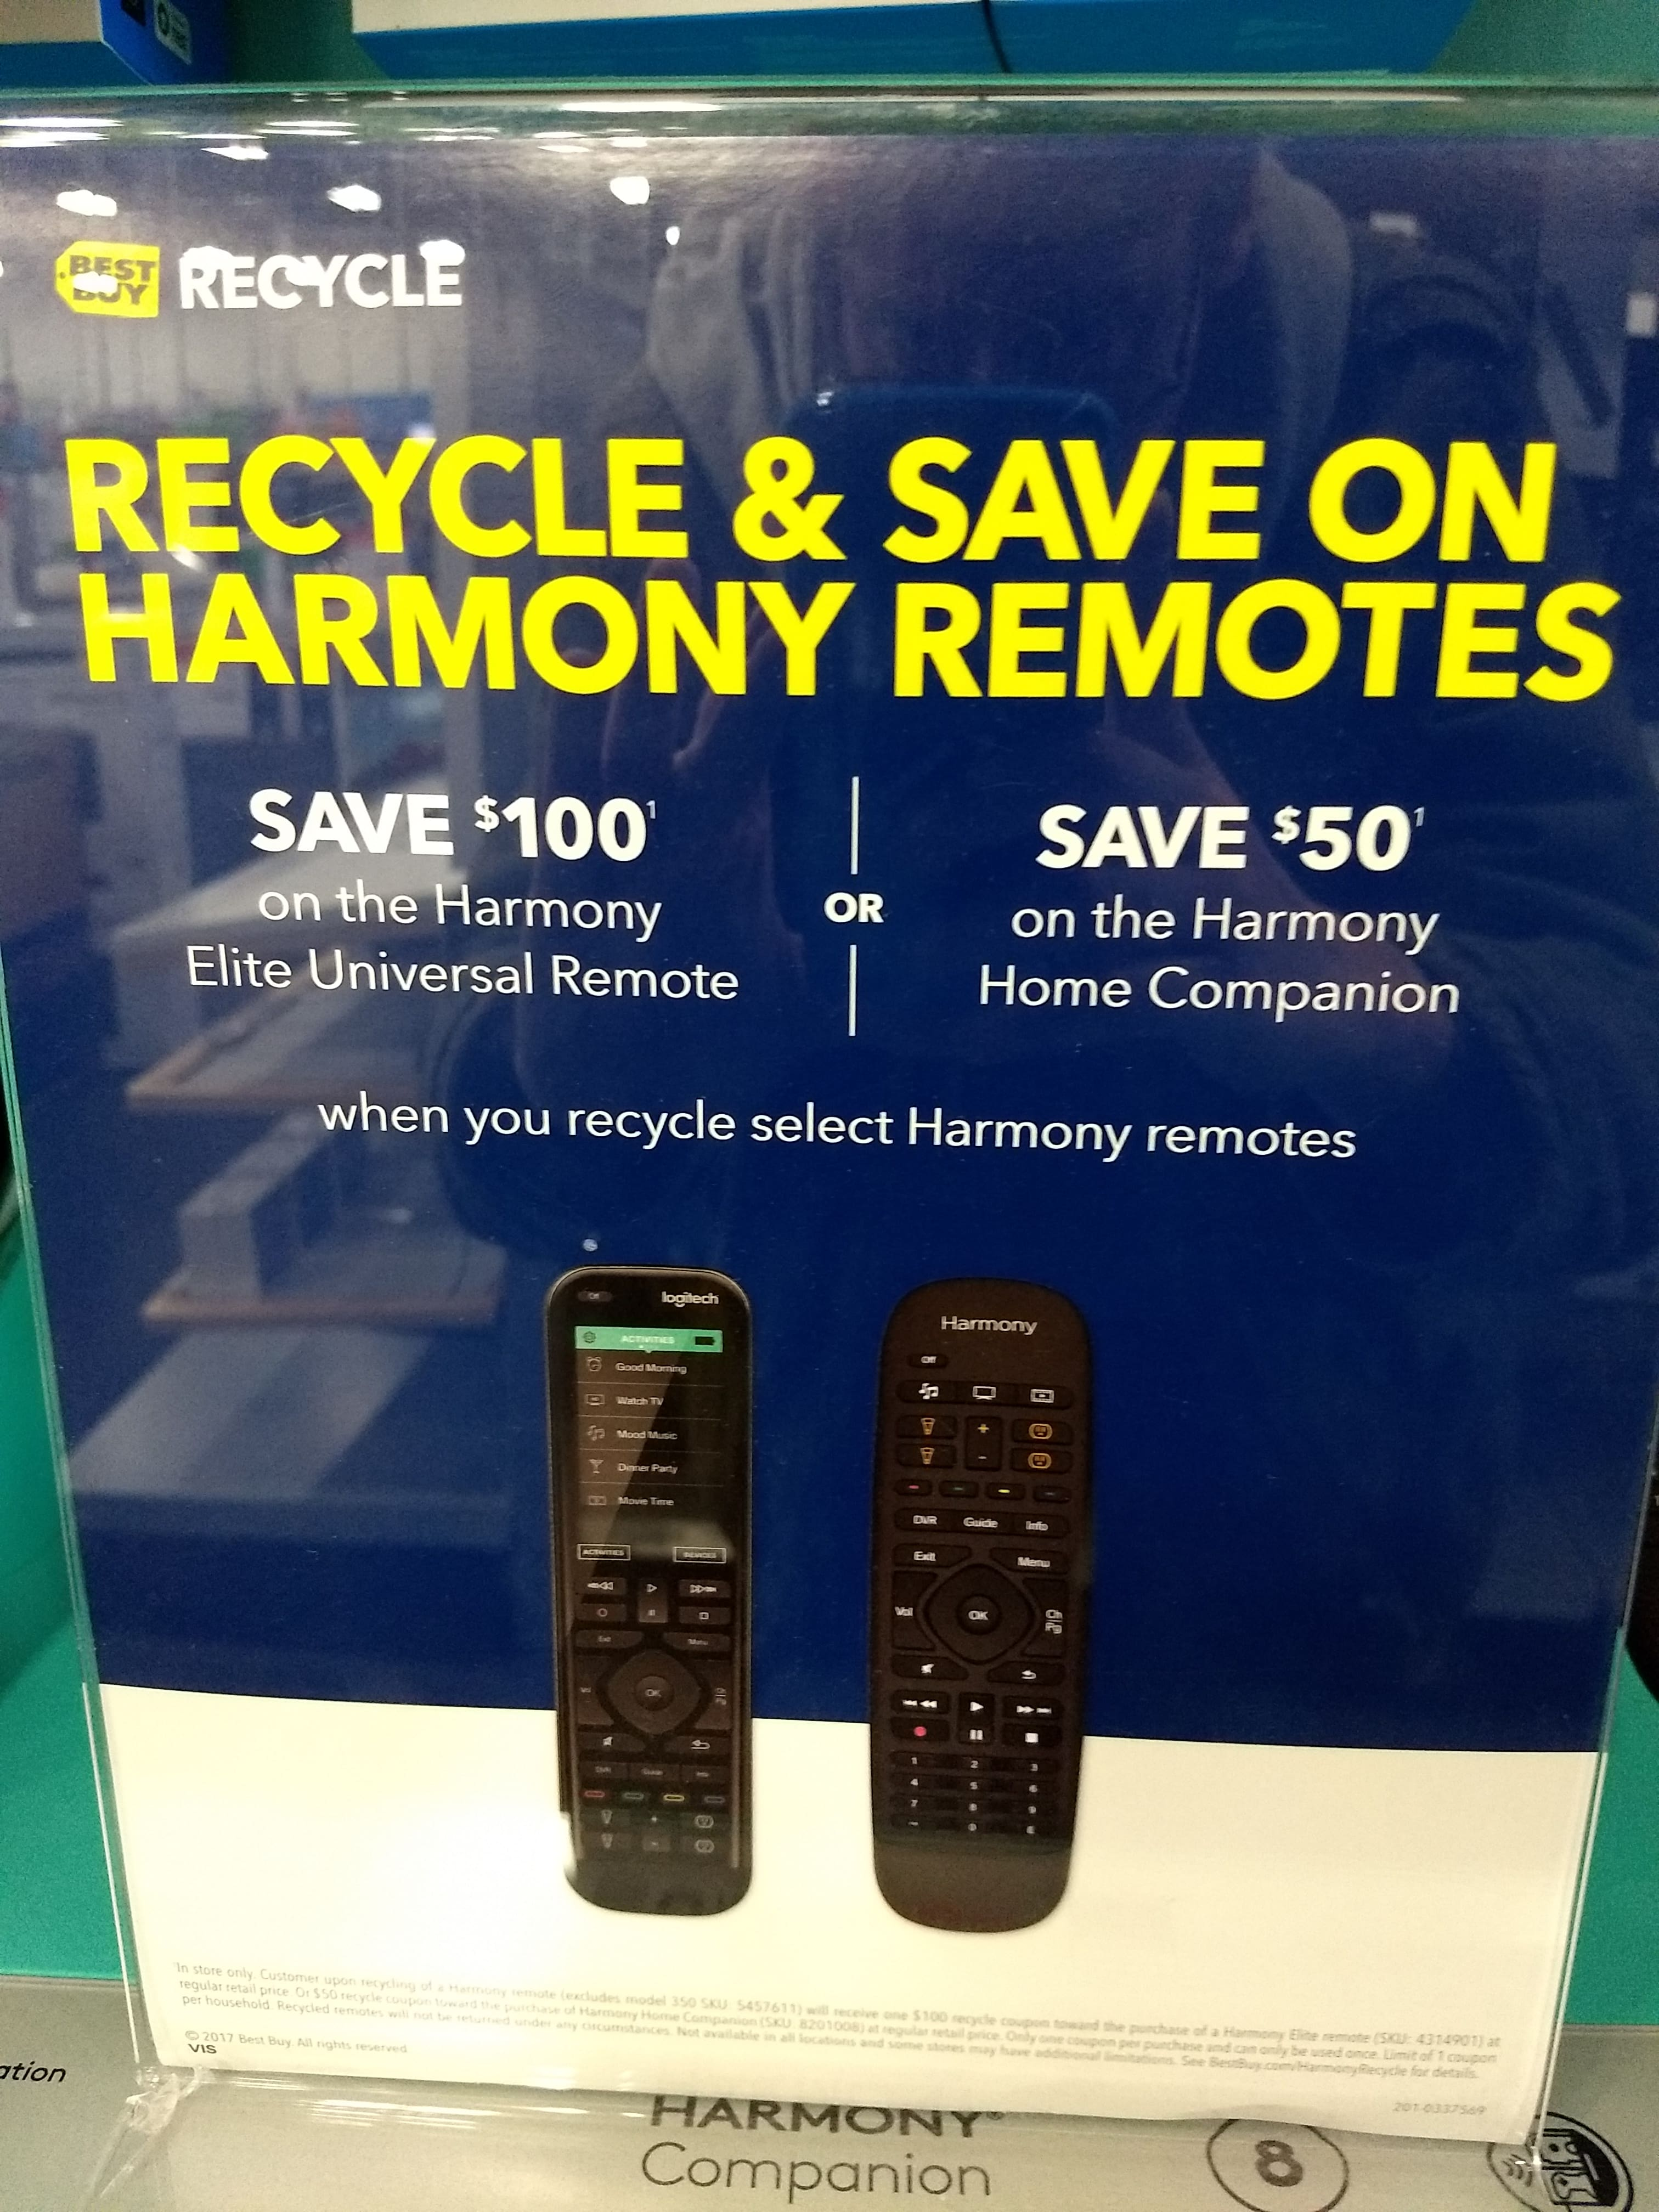 e75021f2883 Best Buy Recycle Harmony Remote get $100 off Elite, $50 off Companion-In  Store Only! YMMV - Slickdeals.net